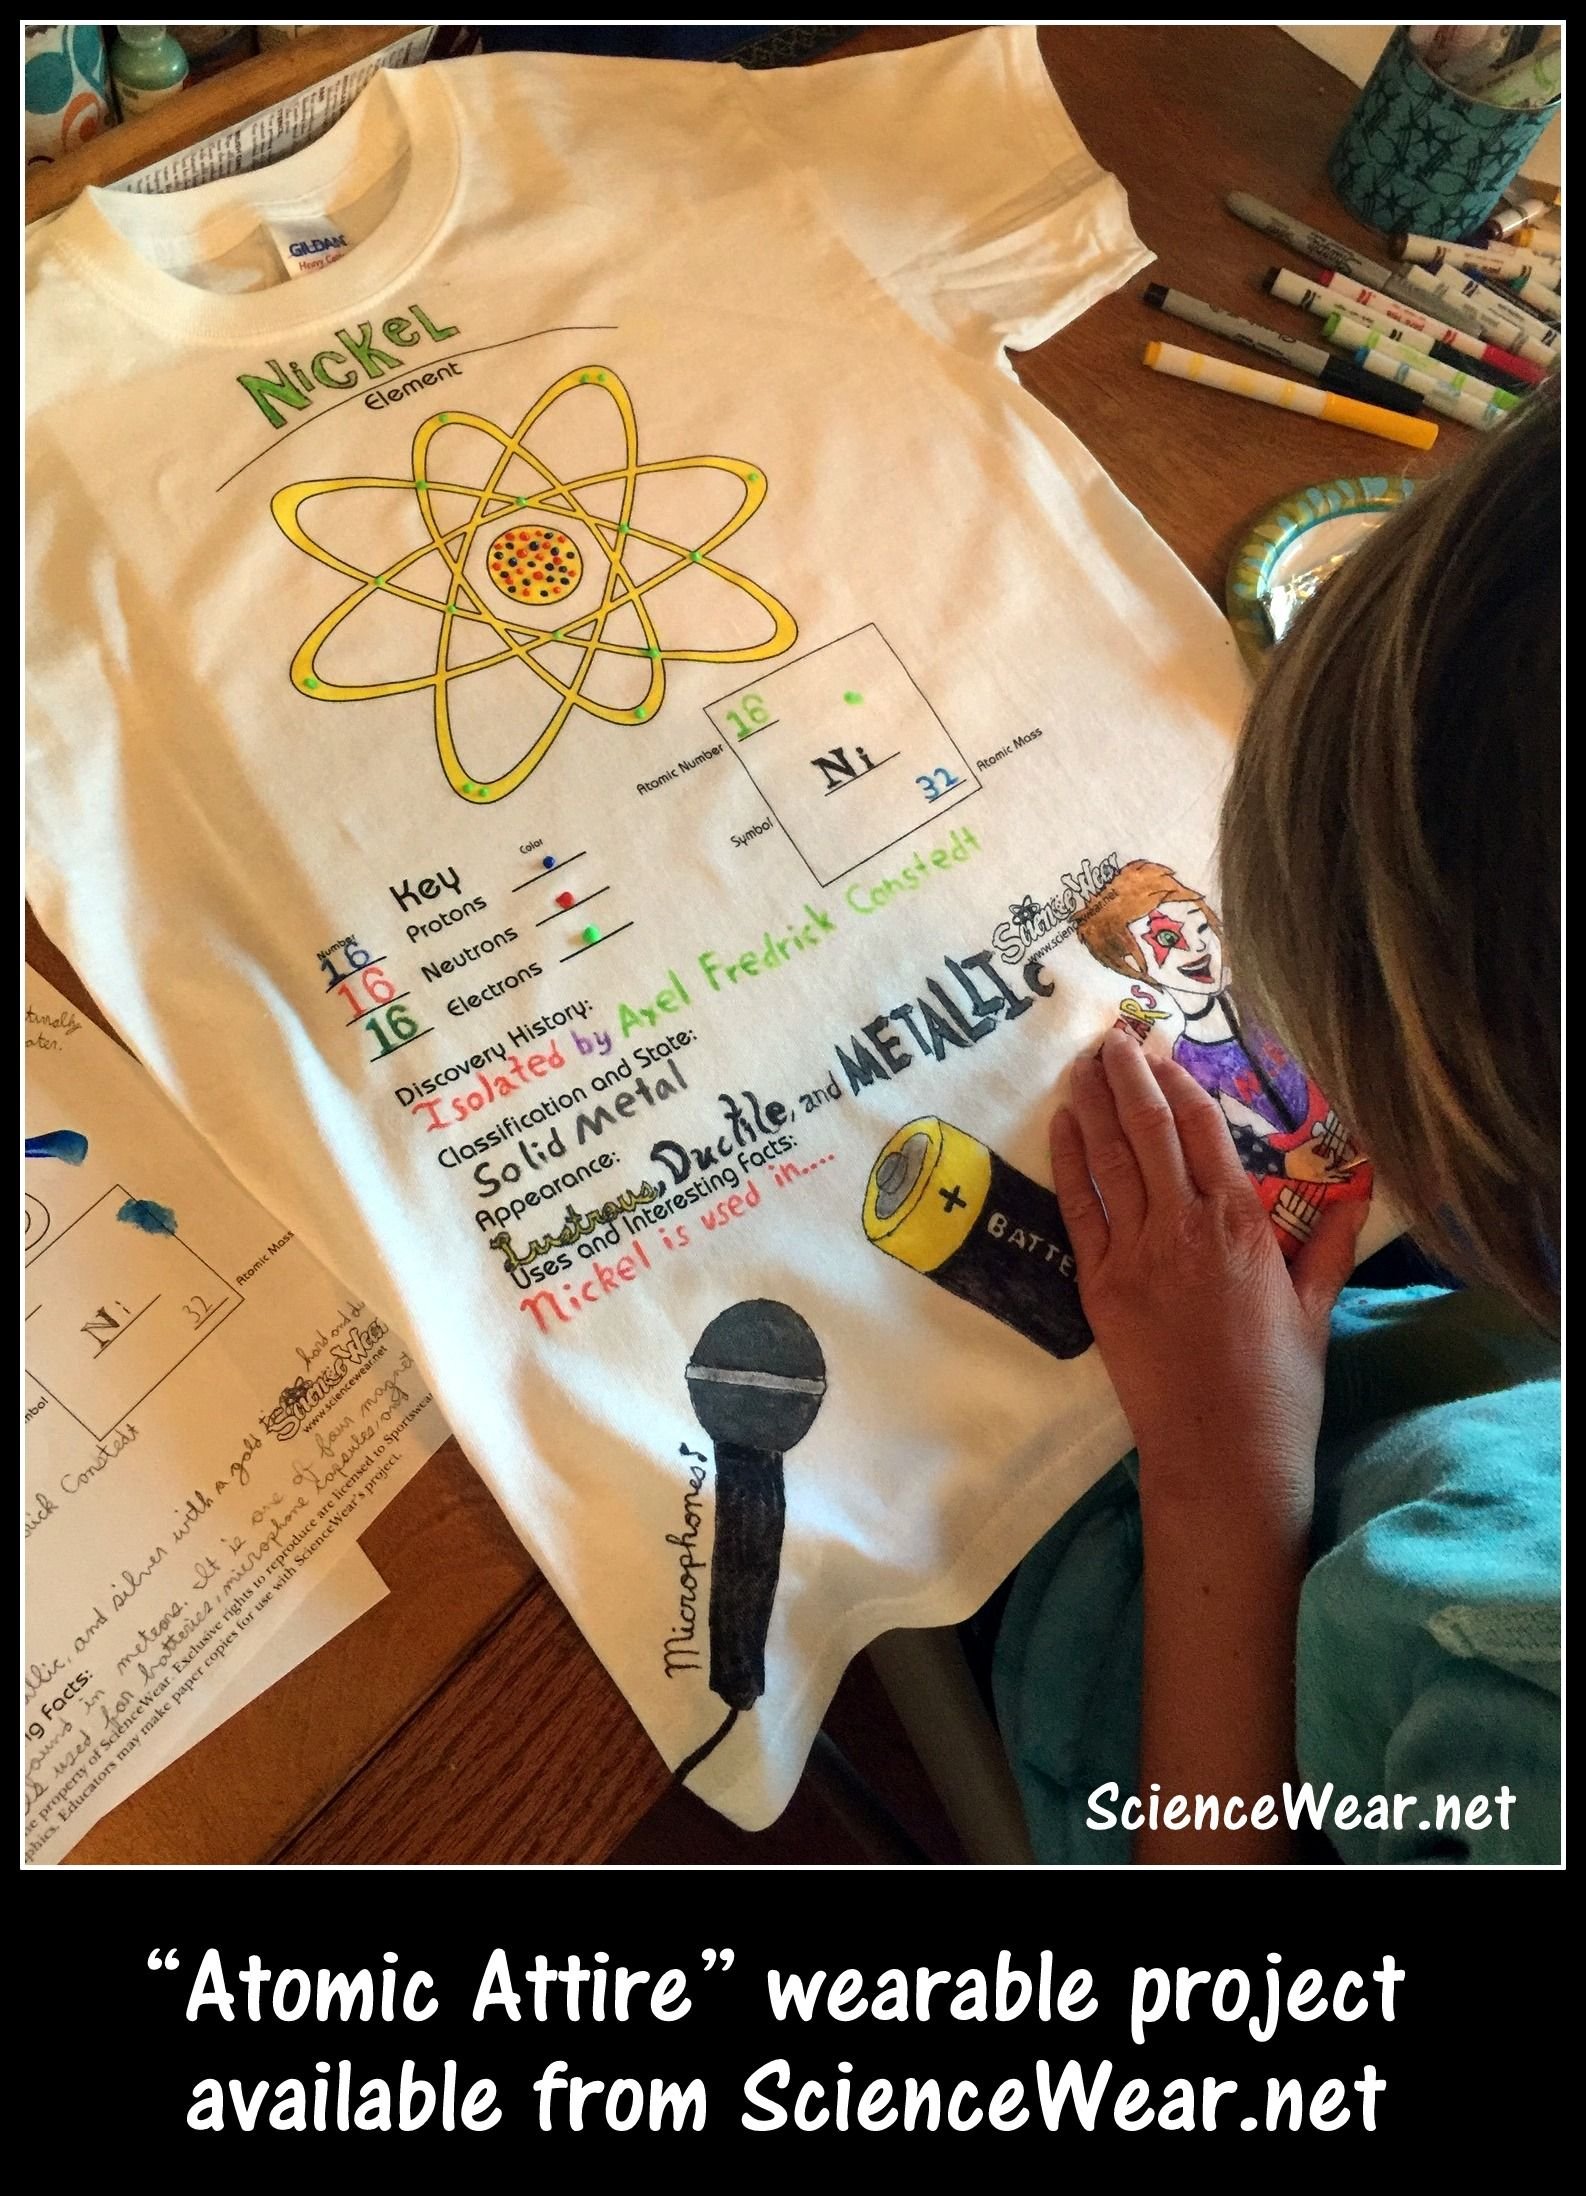 8th Grader Putting Finishing Touches On Her Atomic Attire